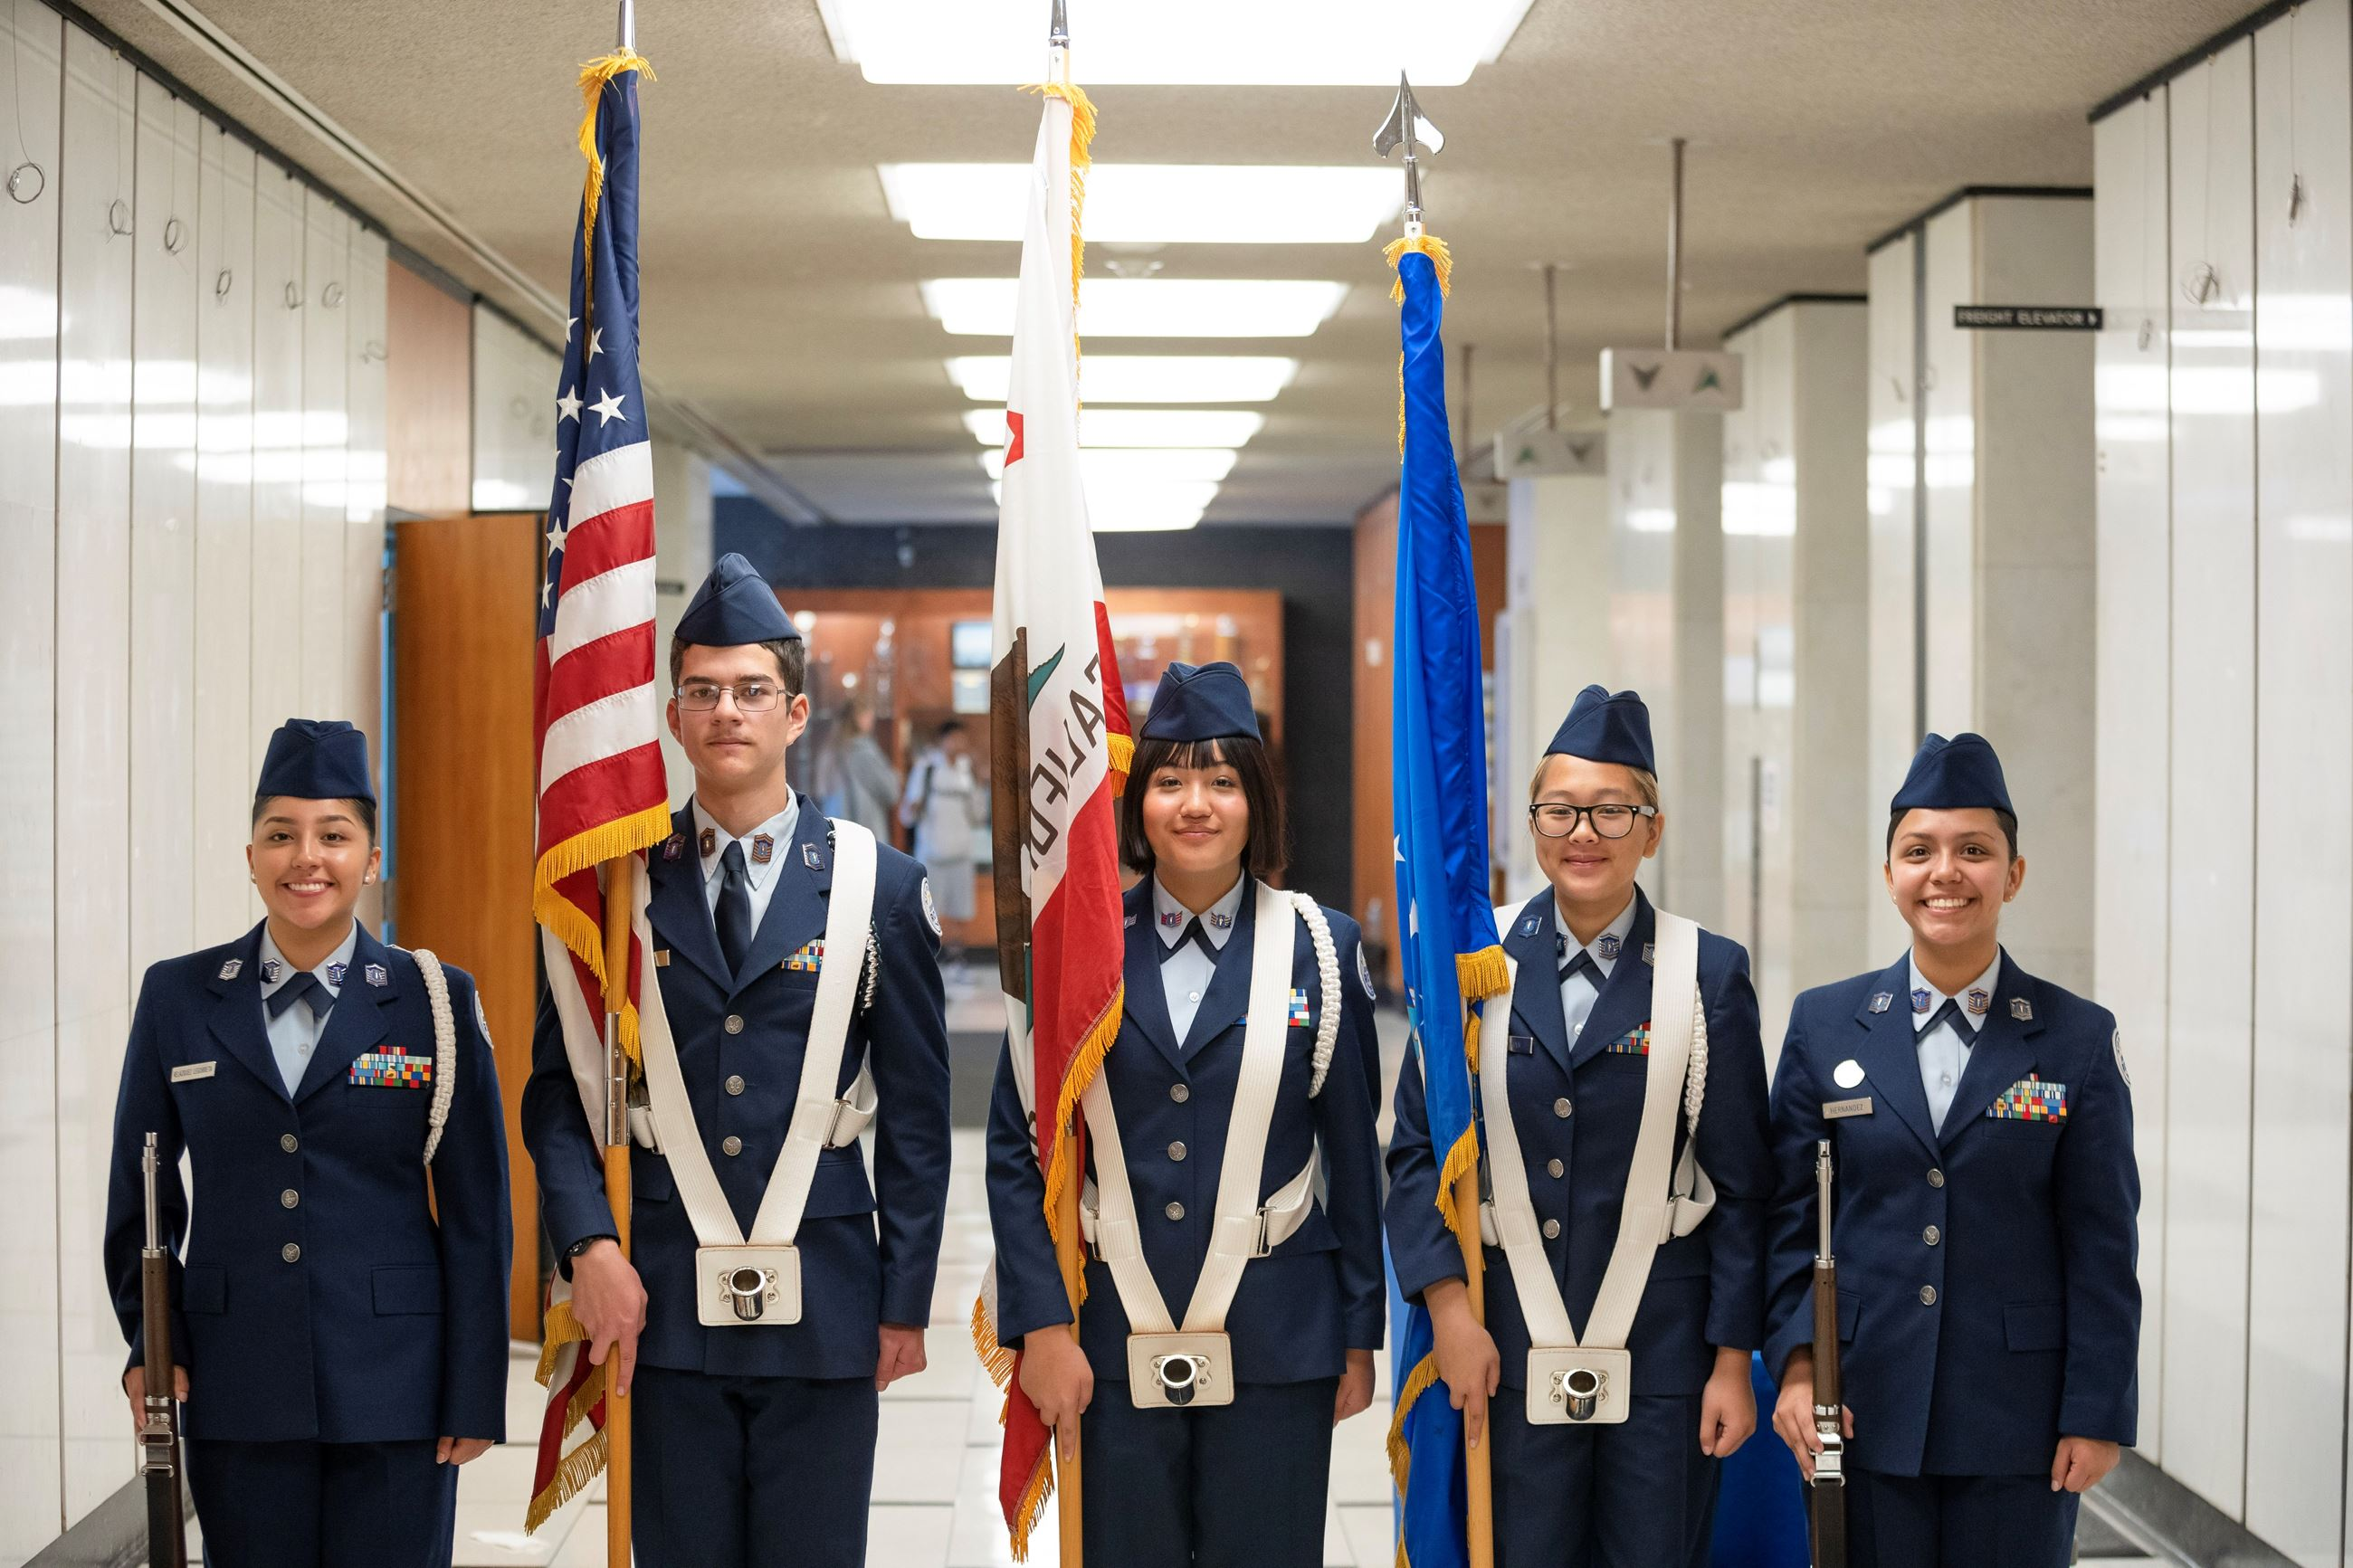 Color Guard preparing to enter chamber